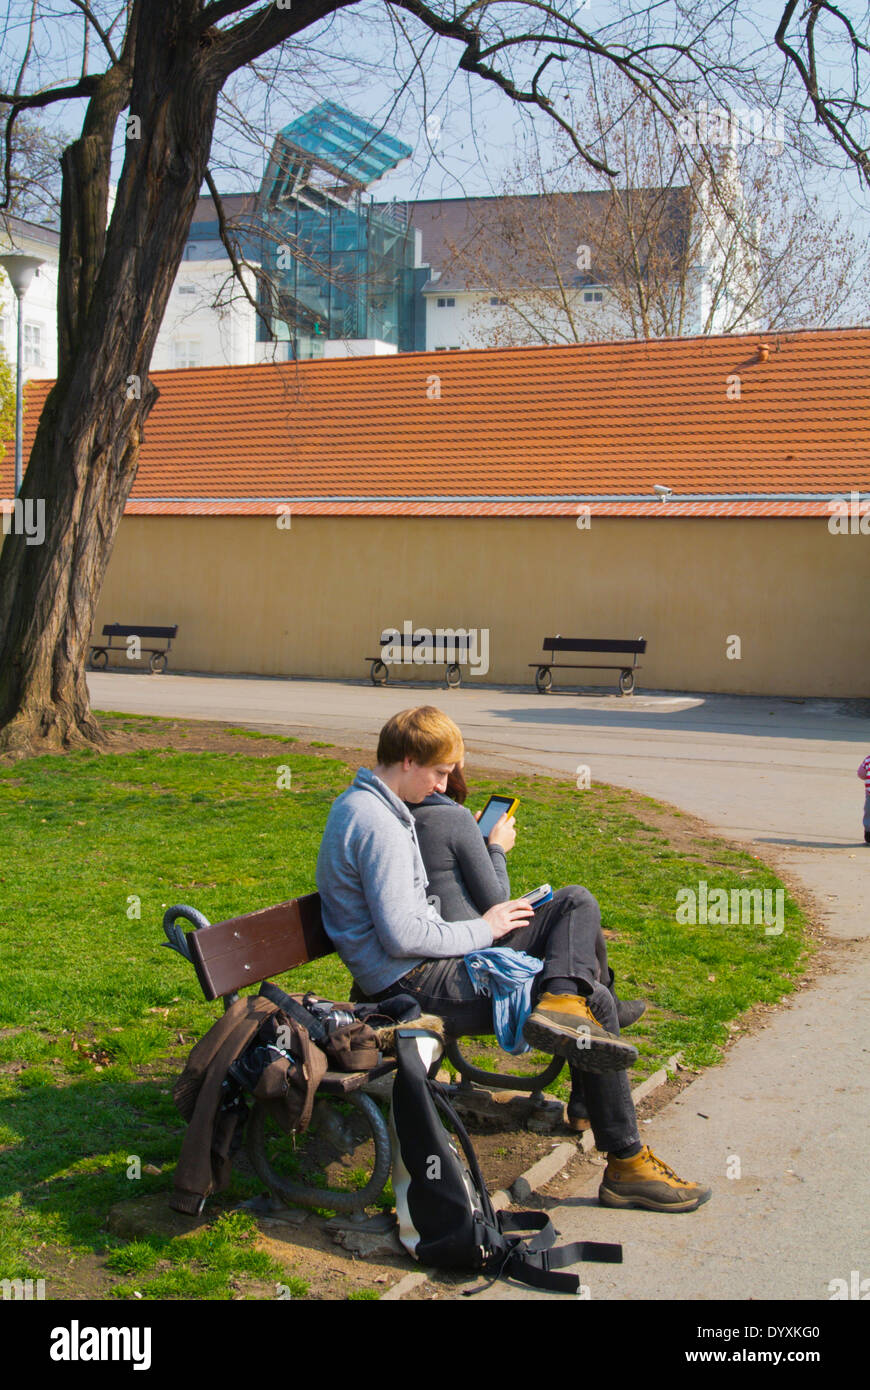 Young couple in their 20s both reading ebooks, Kampa island, Mala strana, Prague, Czech Republic, Europe - Stock Image